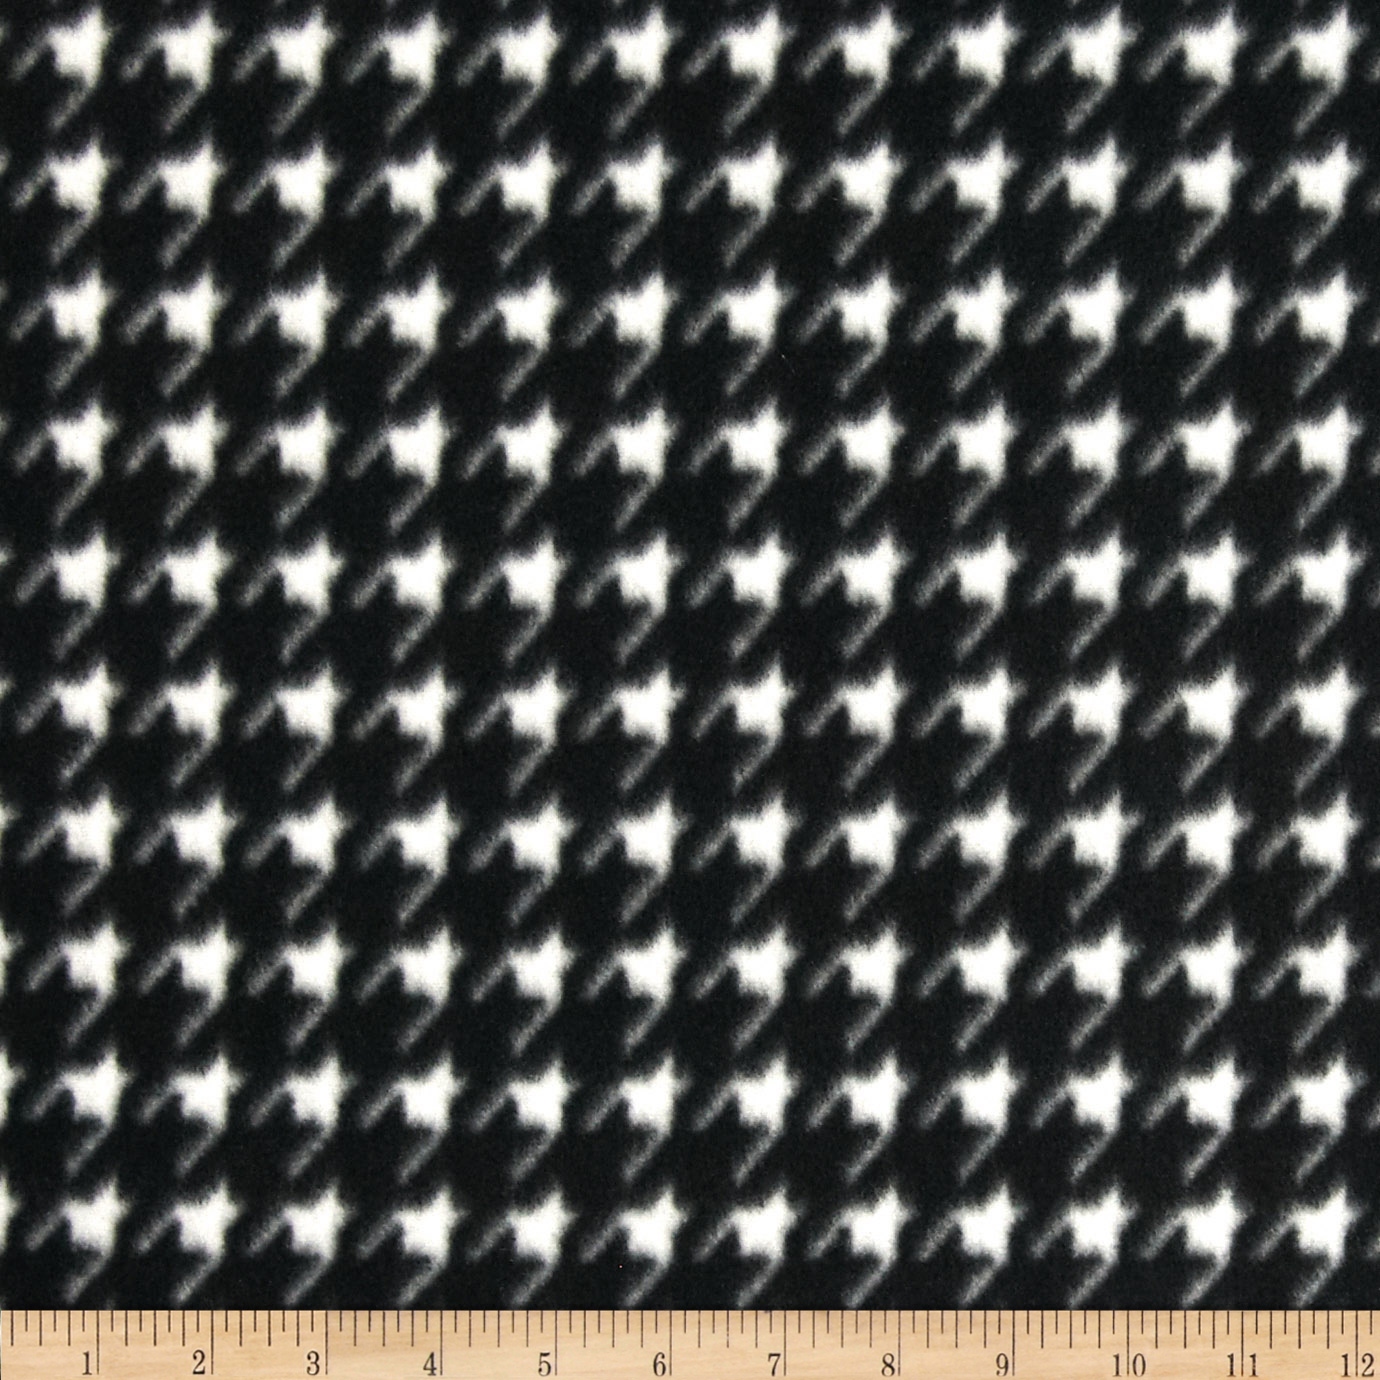 Fleece Print Small Houndstooth Black/White